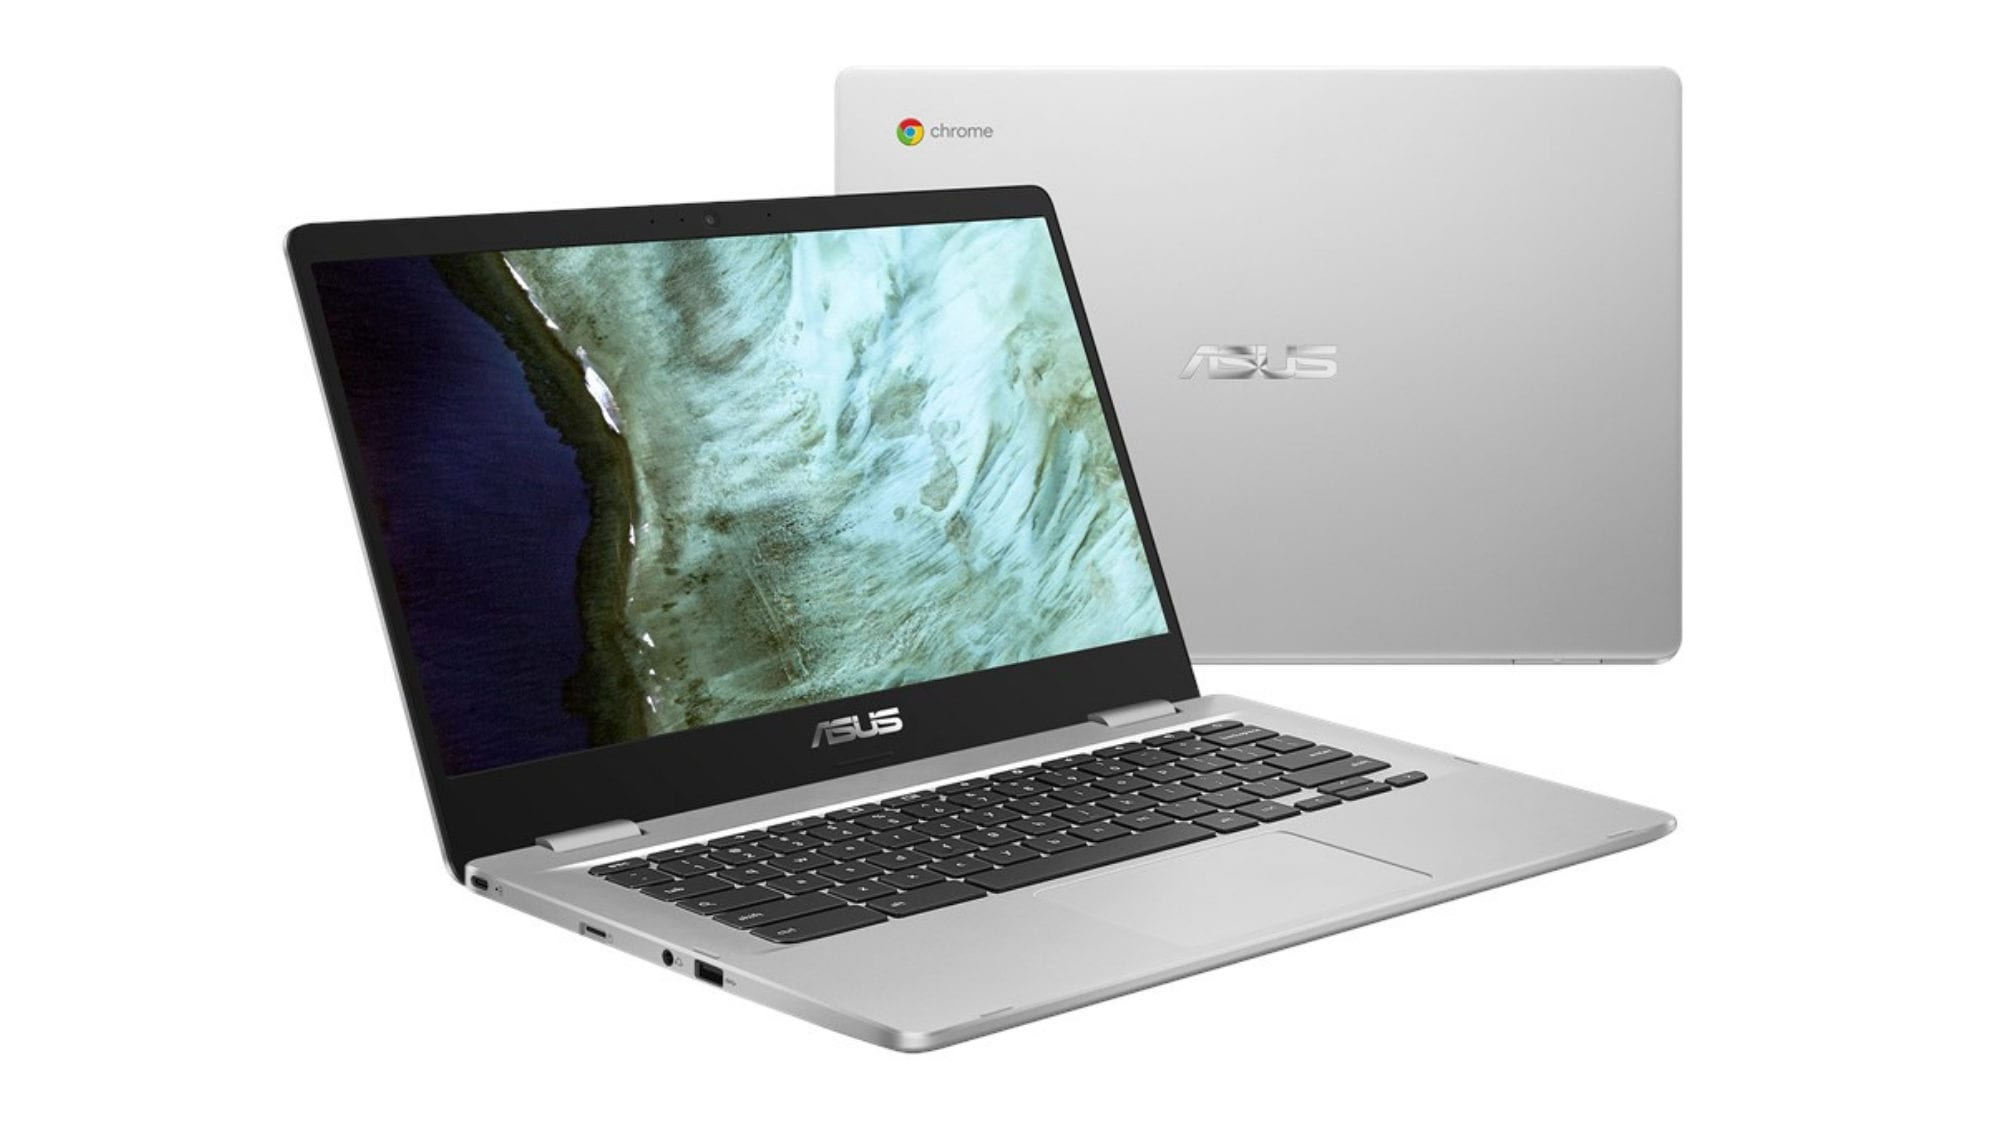 New 14 Inch ASUS Chromebook C423 Shows Up Out Of Nowhere